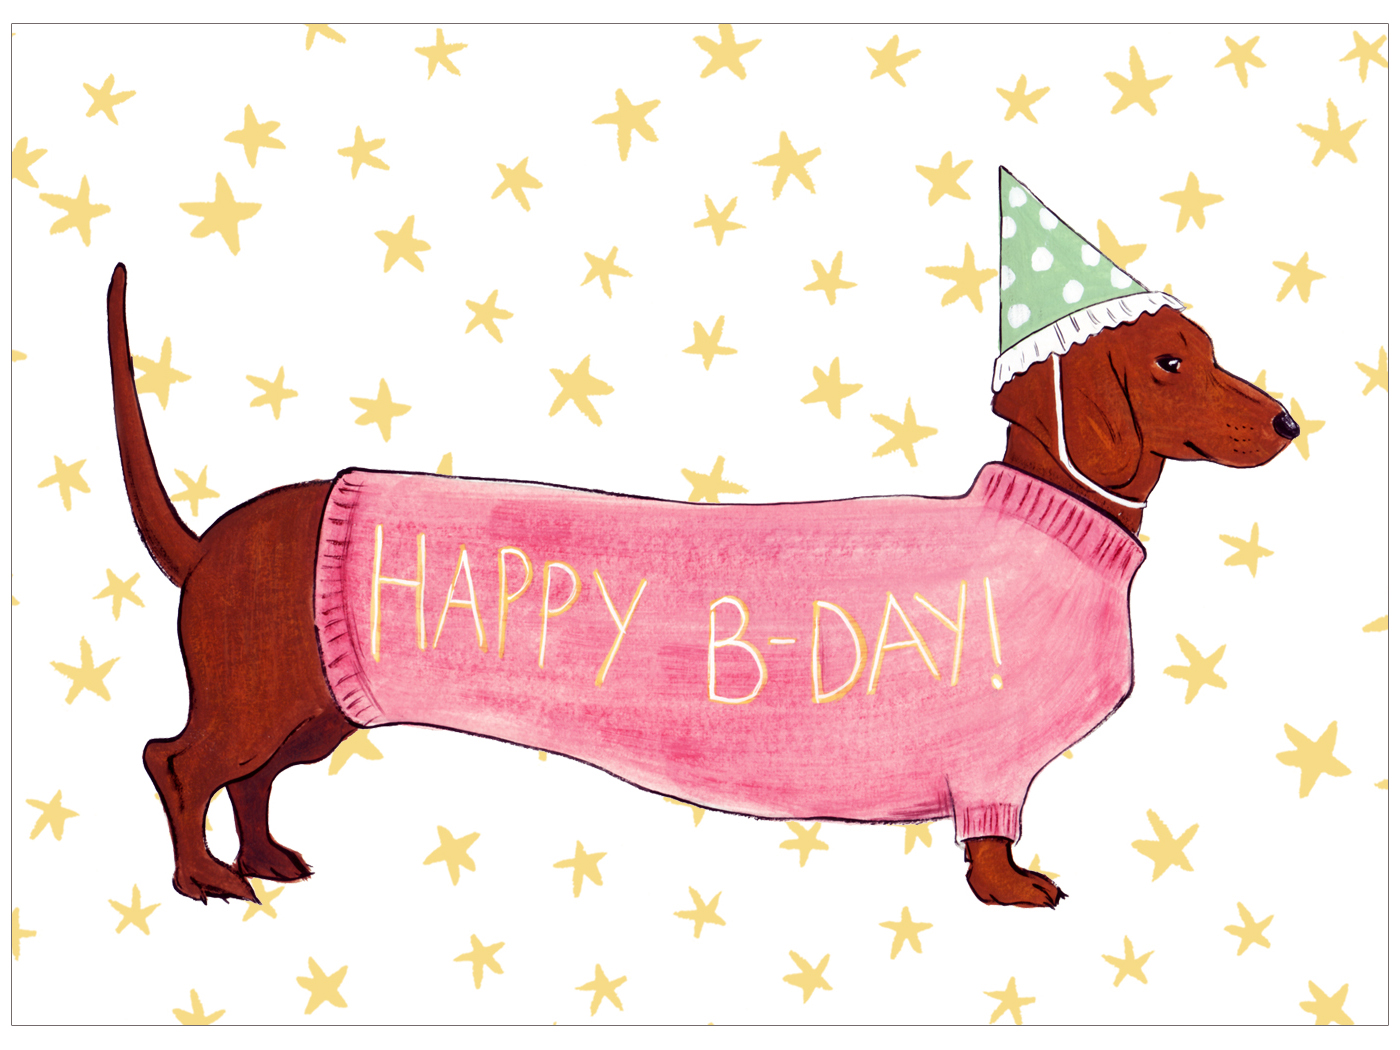 Wiener Dog Happy Birthday Greeting Card Kimmy Makes Things